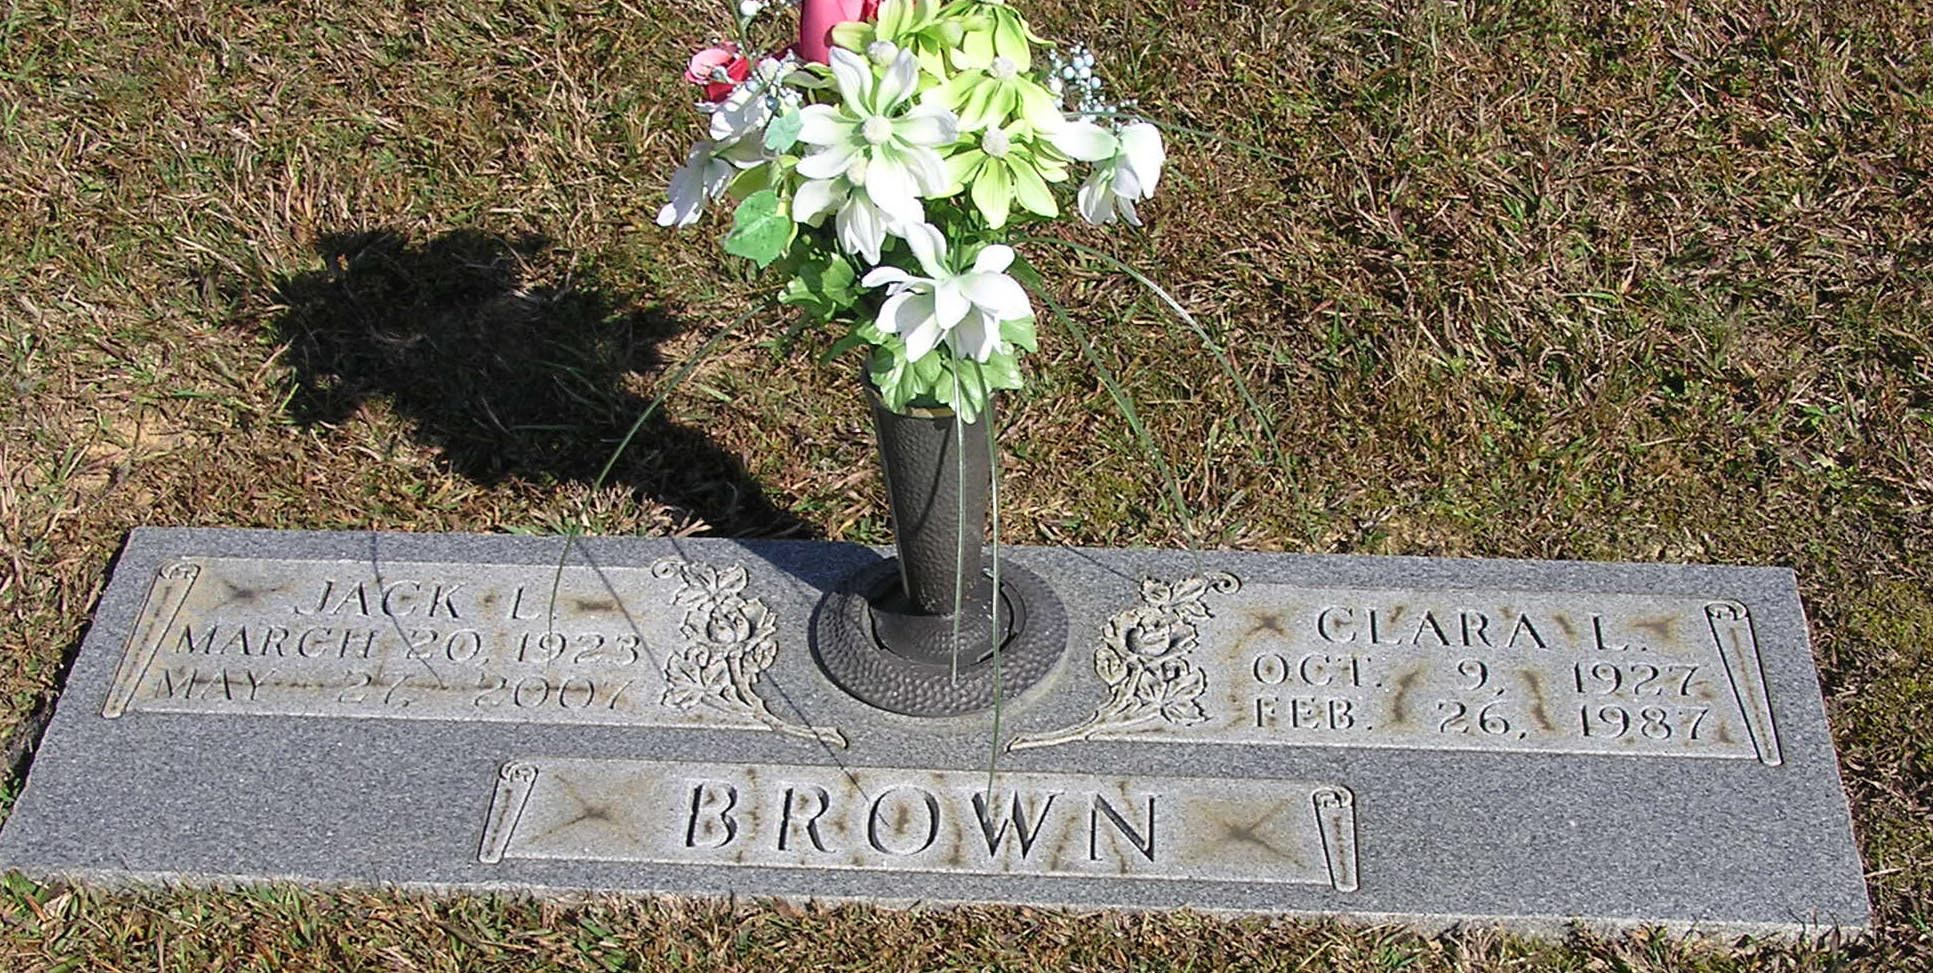 Lawrence William Brown